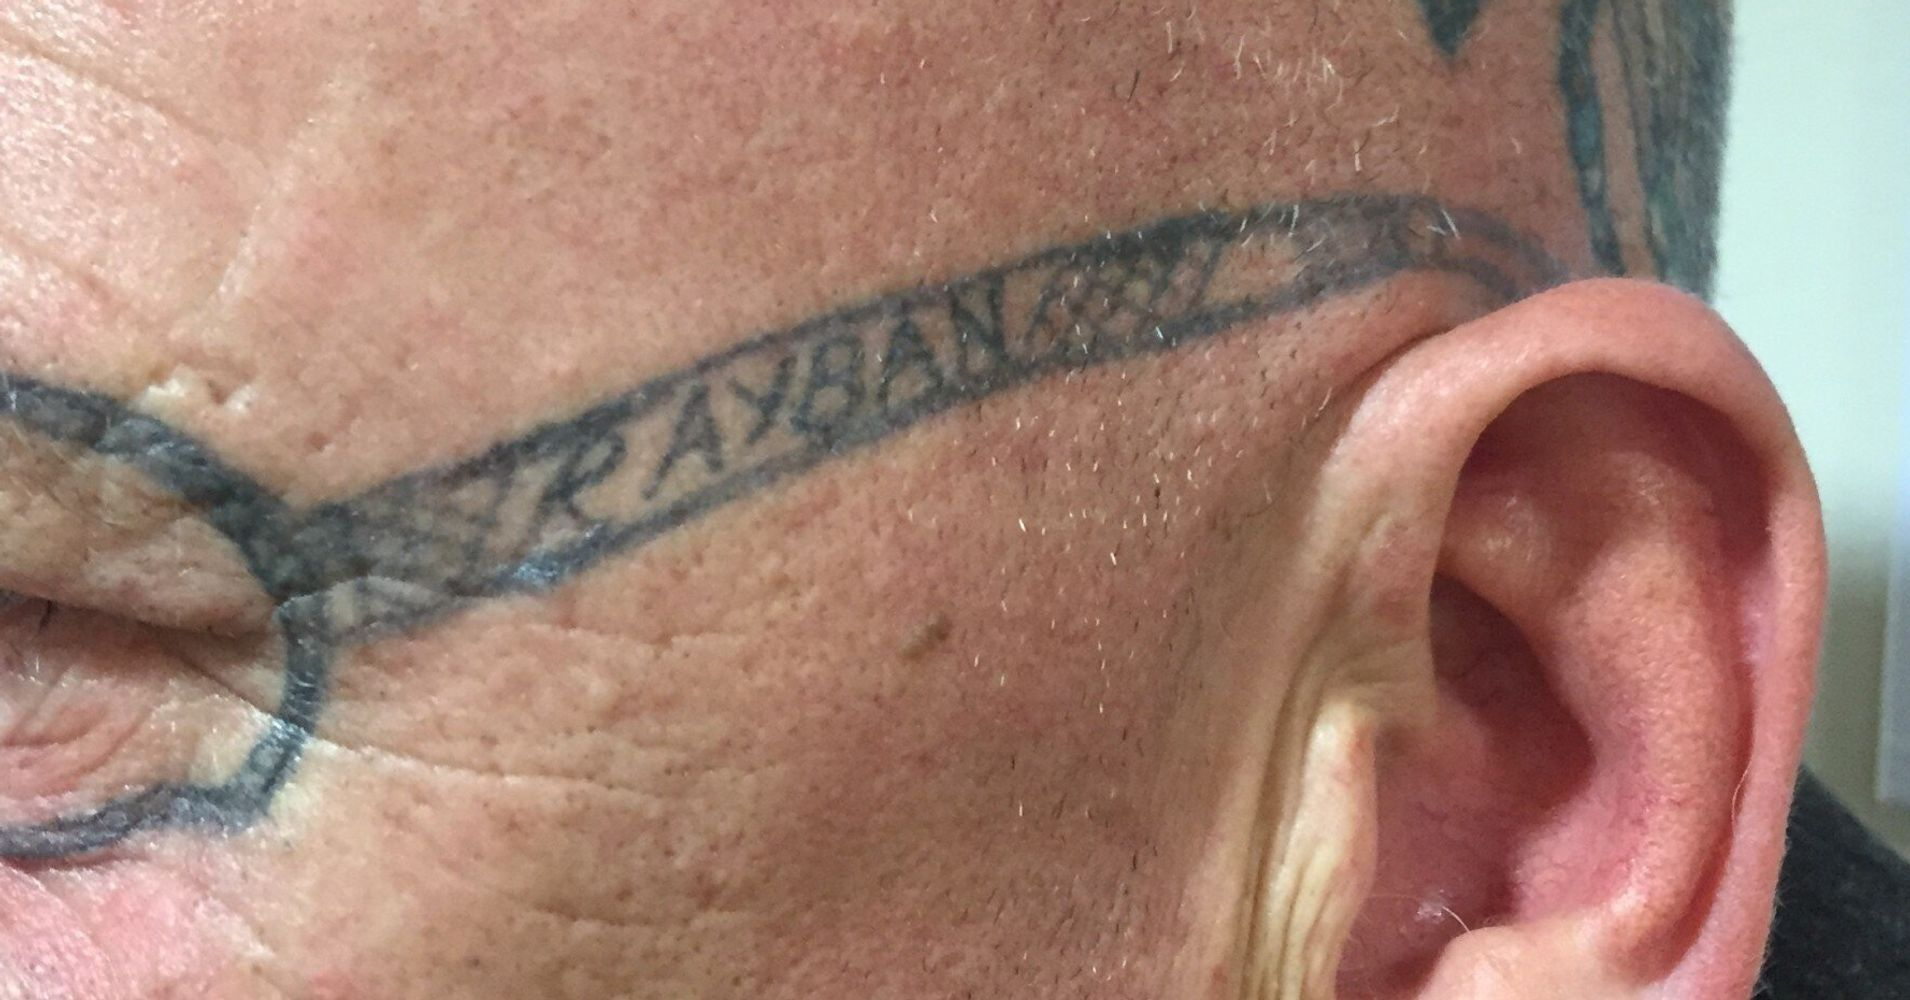 1b2da5b78fb88 Man Wakes Up With 'Ray-Ban' Sunglasses Tattooed On His Face After Friend's  Stag Do